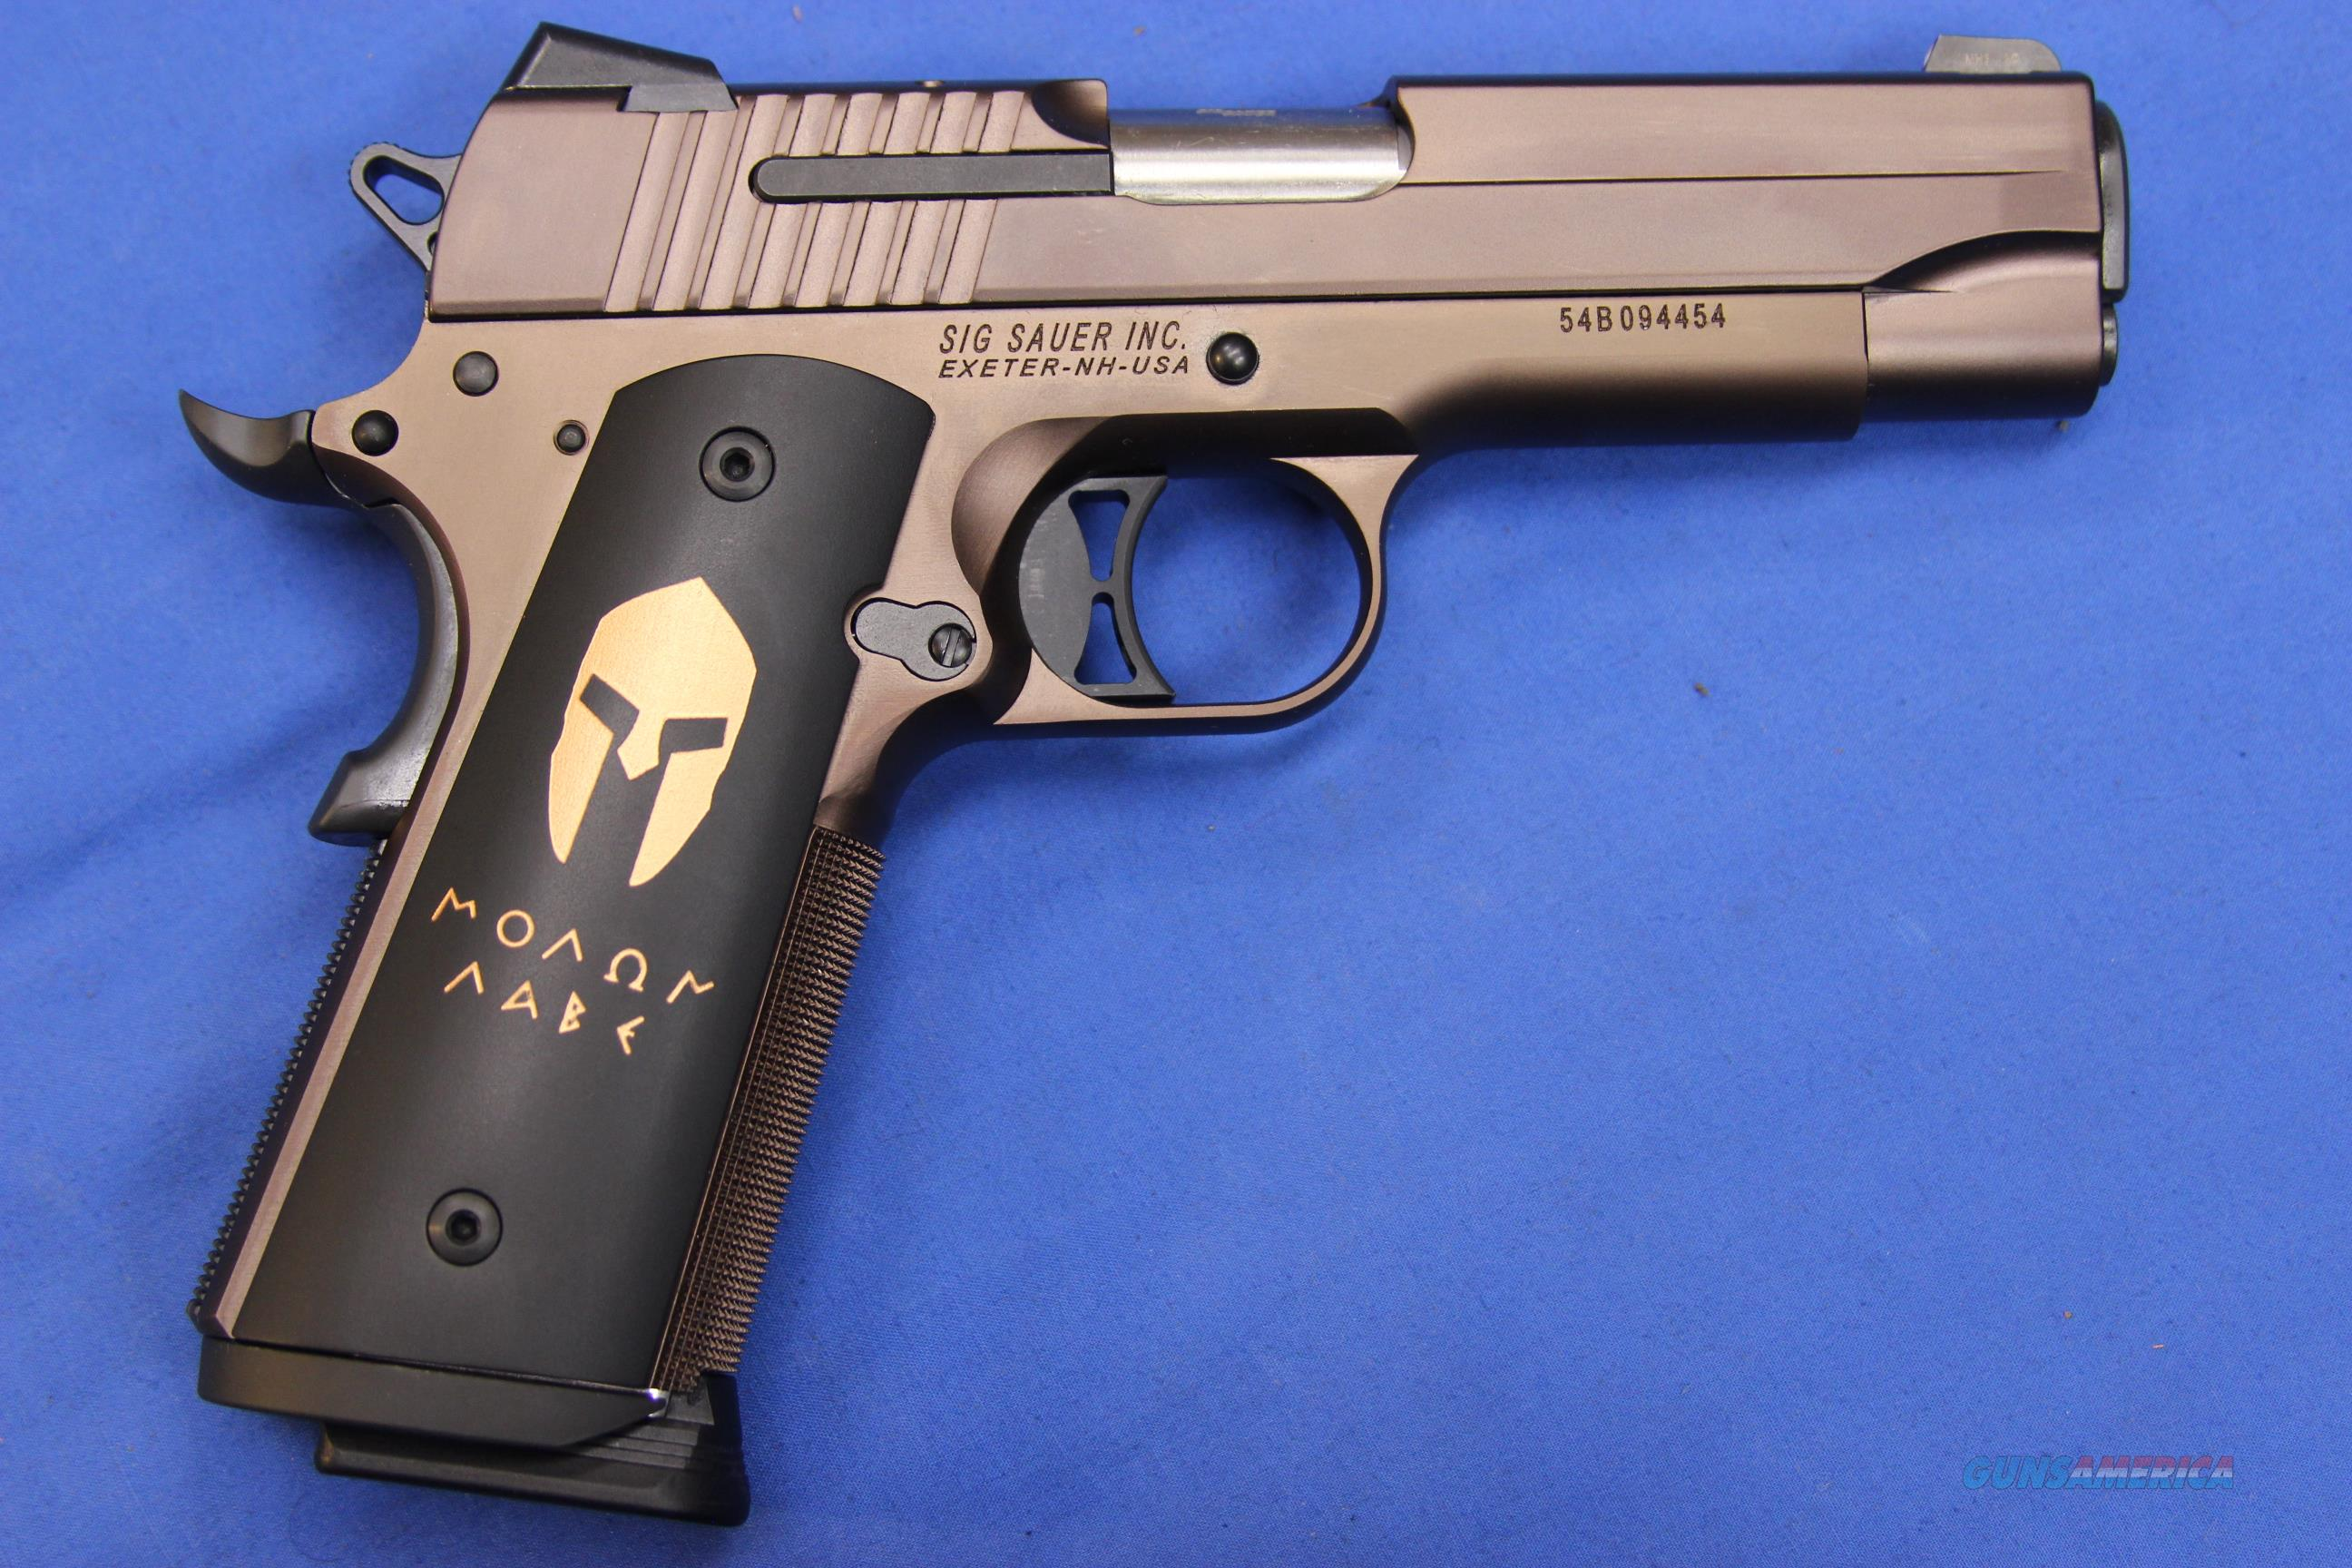 SIG SAUER 1911 SPARTAN CARRY .45 ACP - NEW!  Guns > Pistols > Sig - Sauer/Sigarms Pistols > 1911